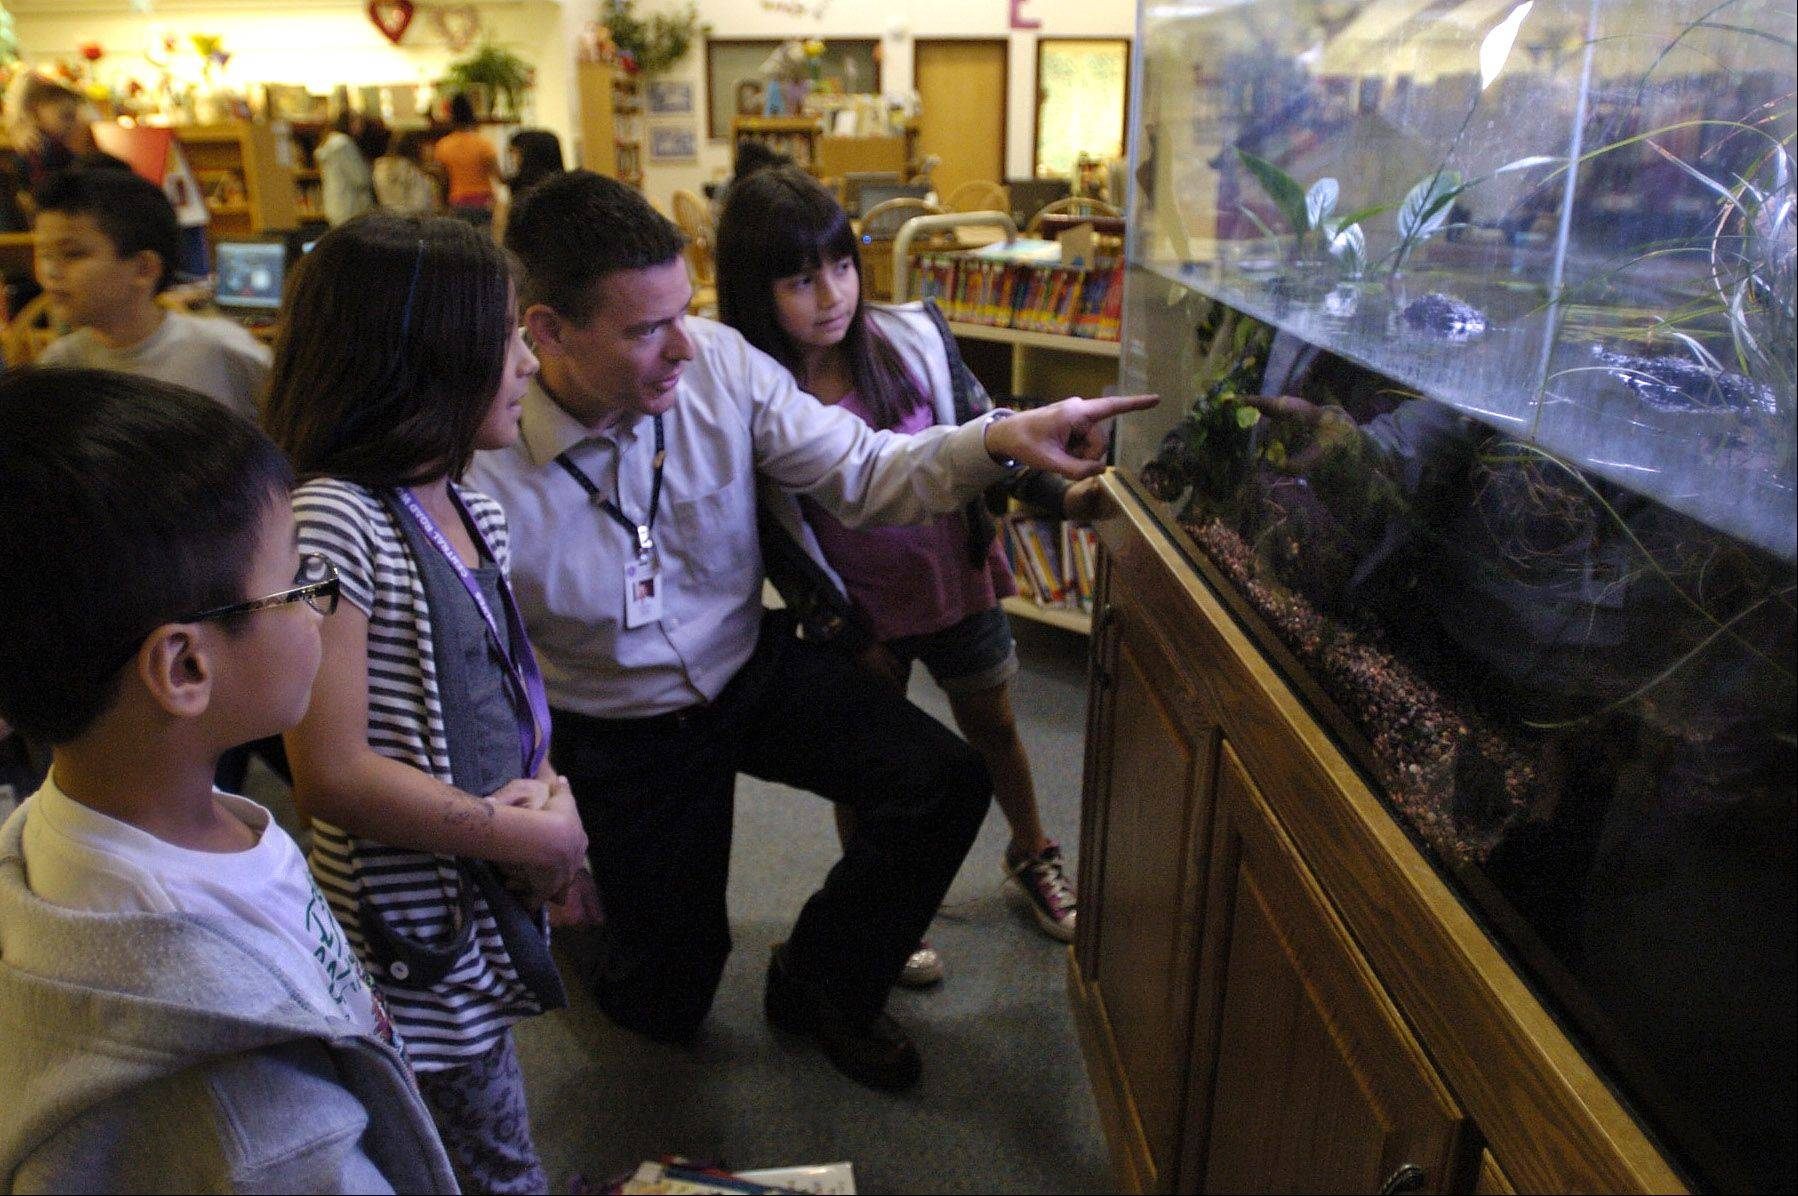 Golden Apple finalist second-grade teacher Rob Taylor works at Central Road School in Rolling Meadows. He is with his students from left, Hao Duong, Olivia Zacarias and Emily Zendejas, looking at a self-sustaining mini ecosystem he designed that is on display in the school library.